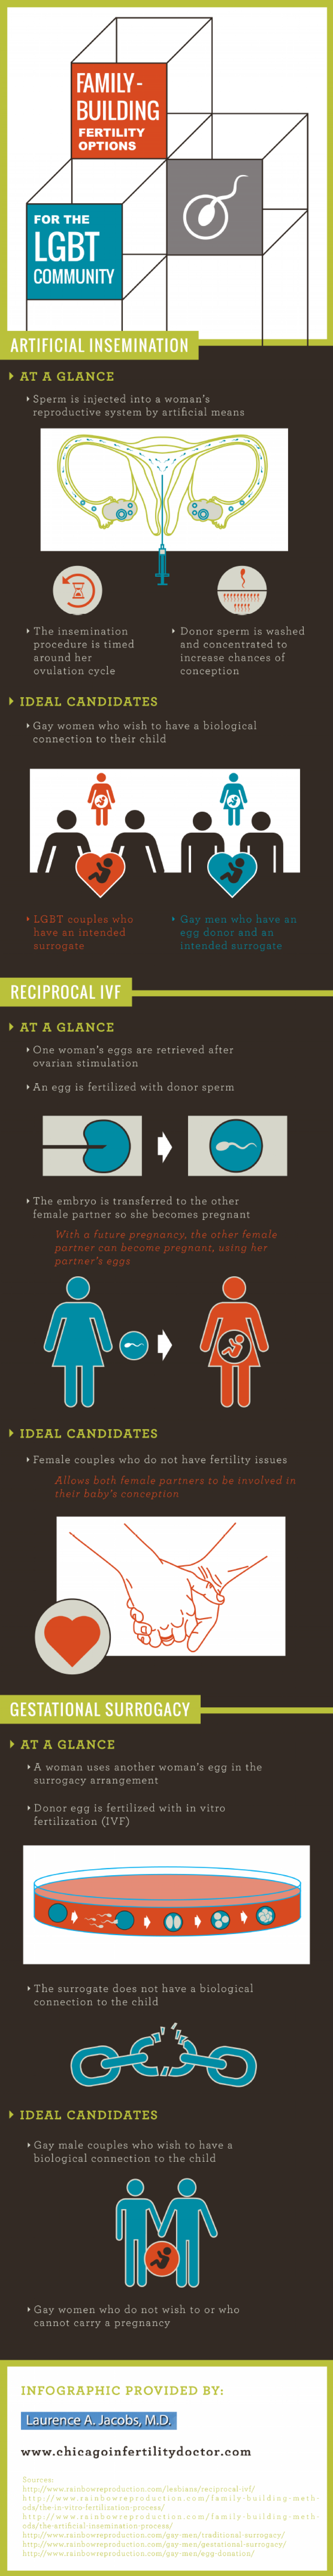 Family-Building Fertility Options for the LGBT Community  Infographic